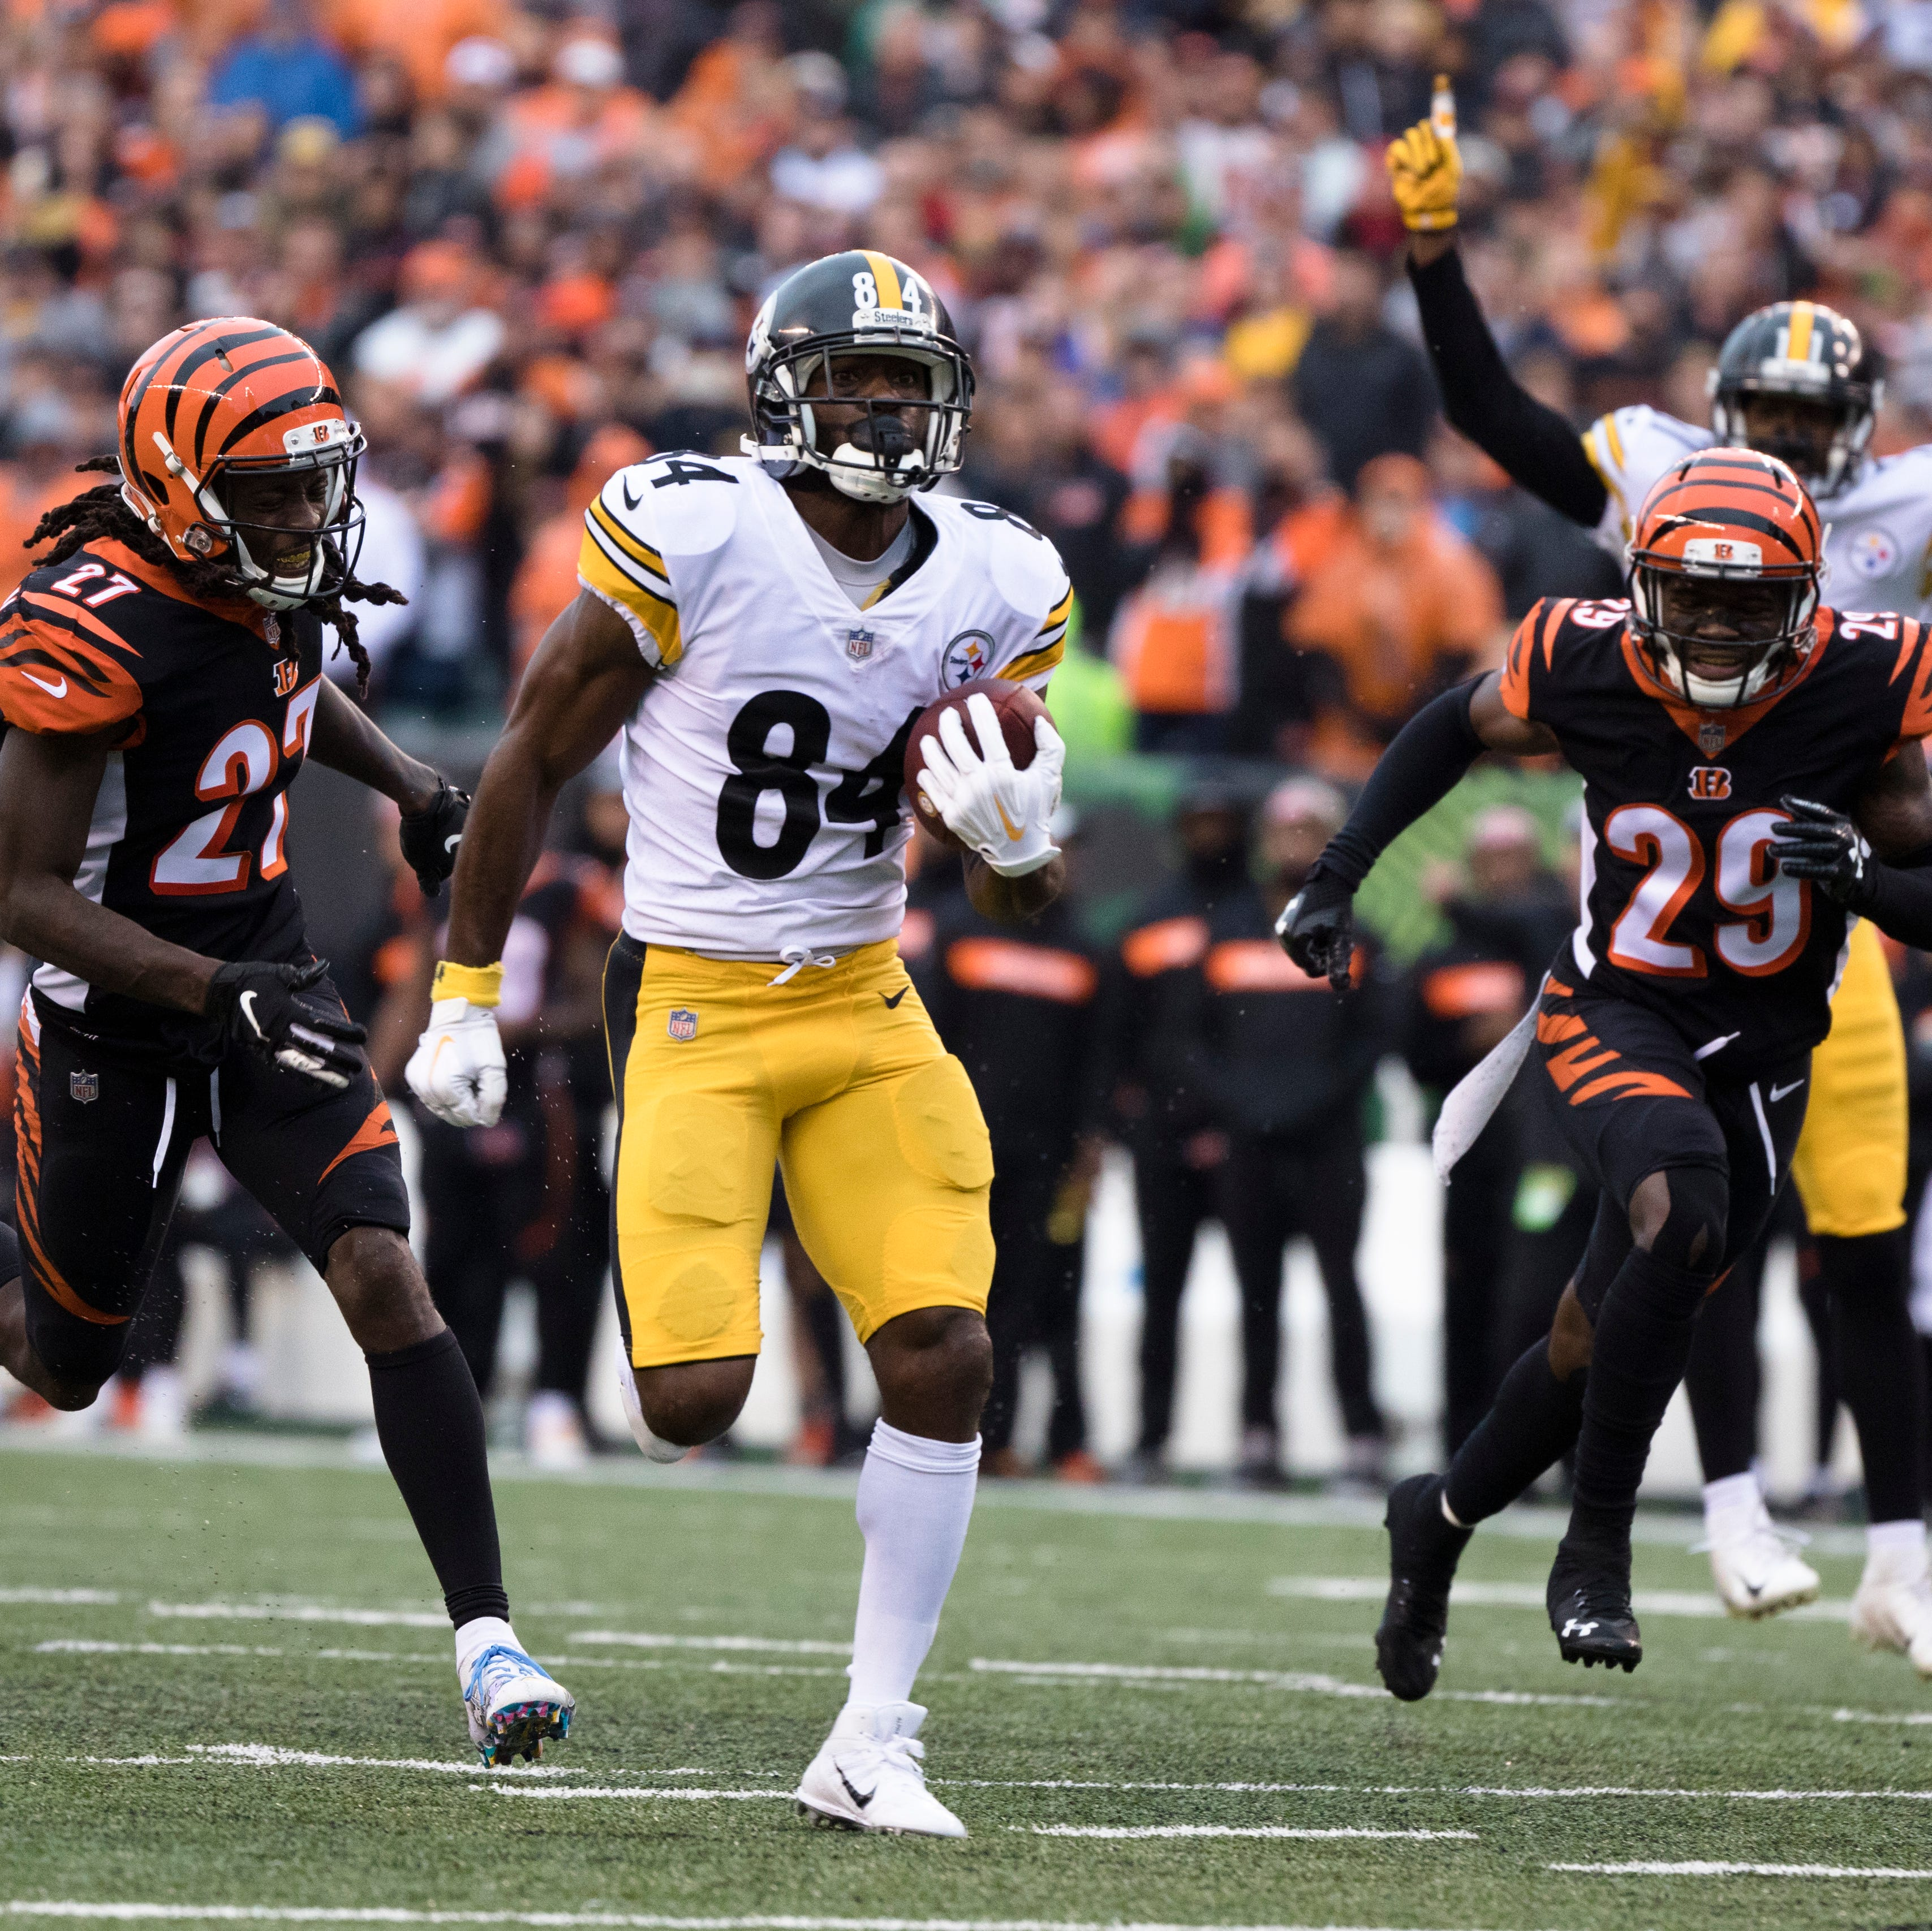 Cincinnati Bengals: Pittsburgh Steelers 'picked' defender on game-winning TD